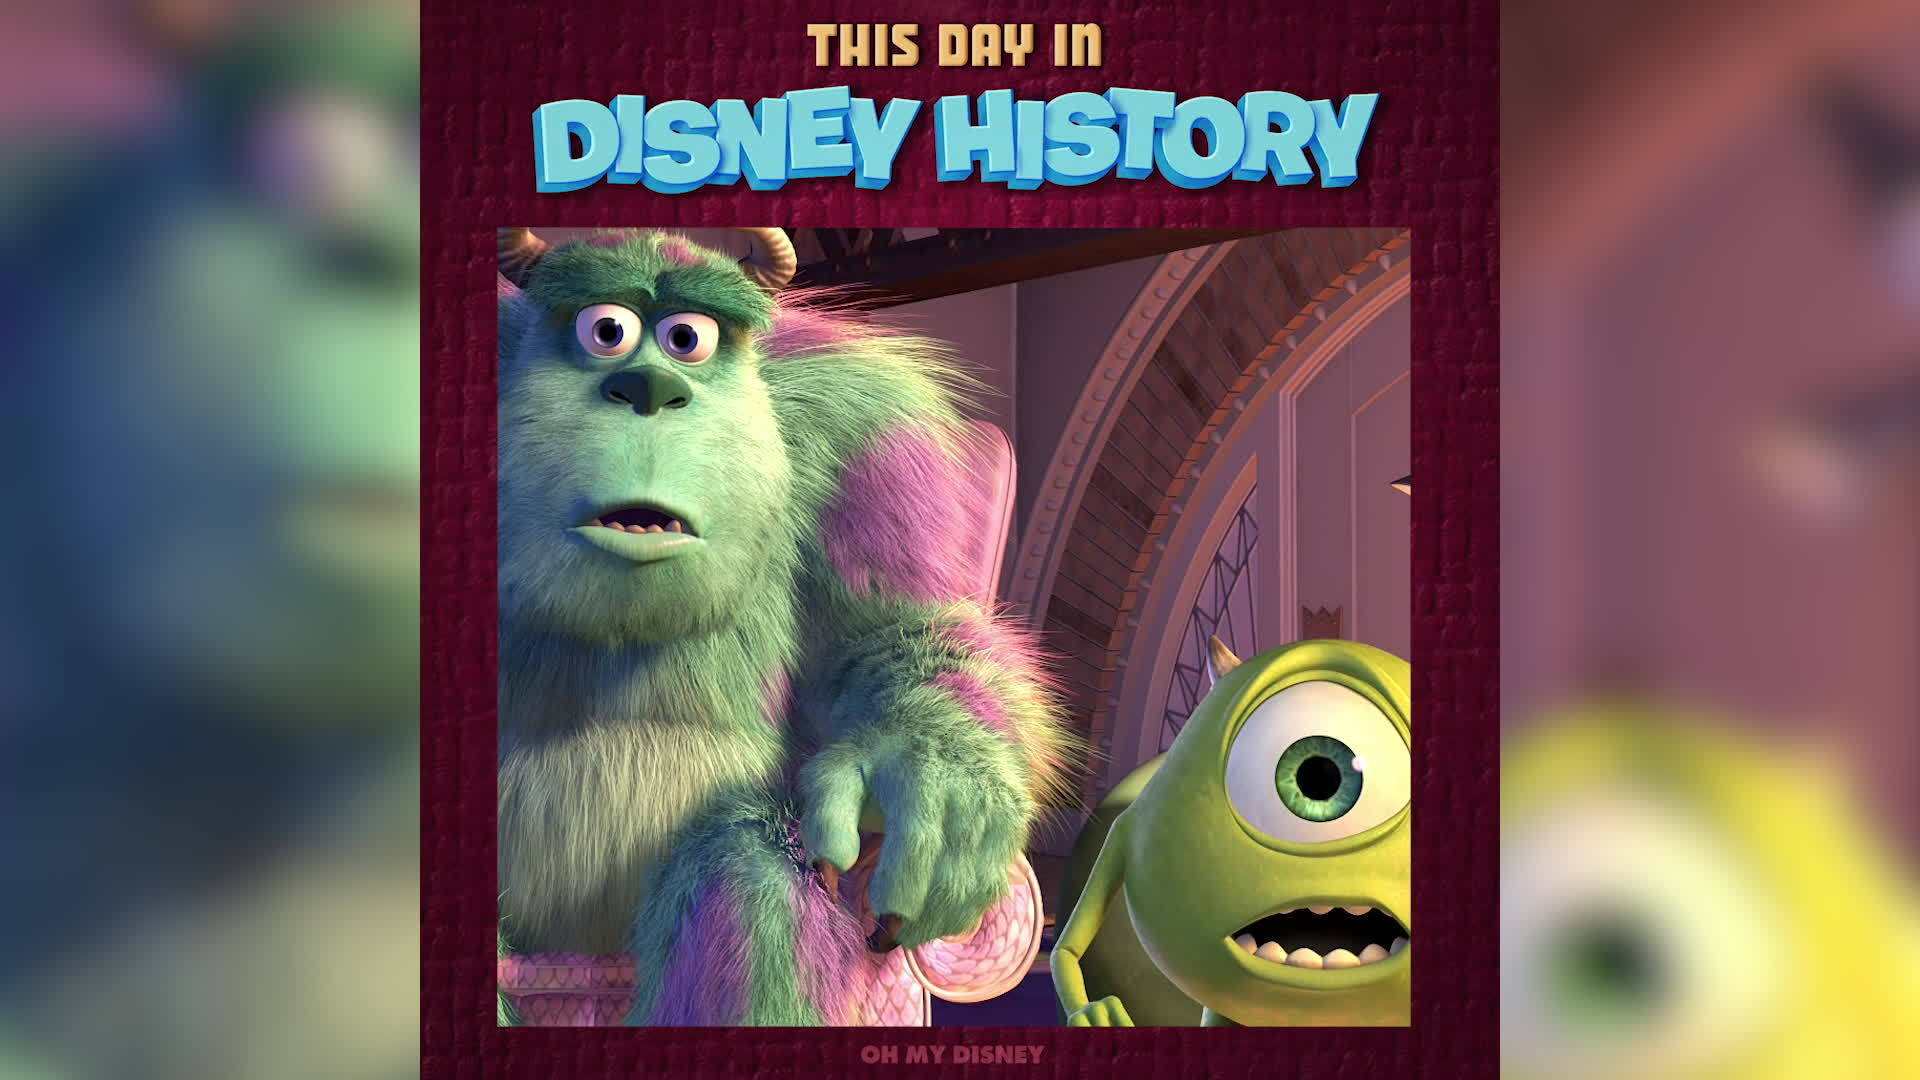 This Day in Disney History: Monsters, Inc. | Oh My Disney